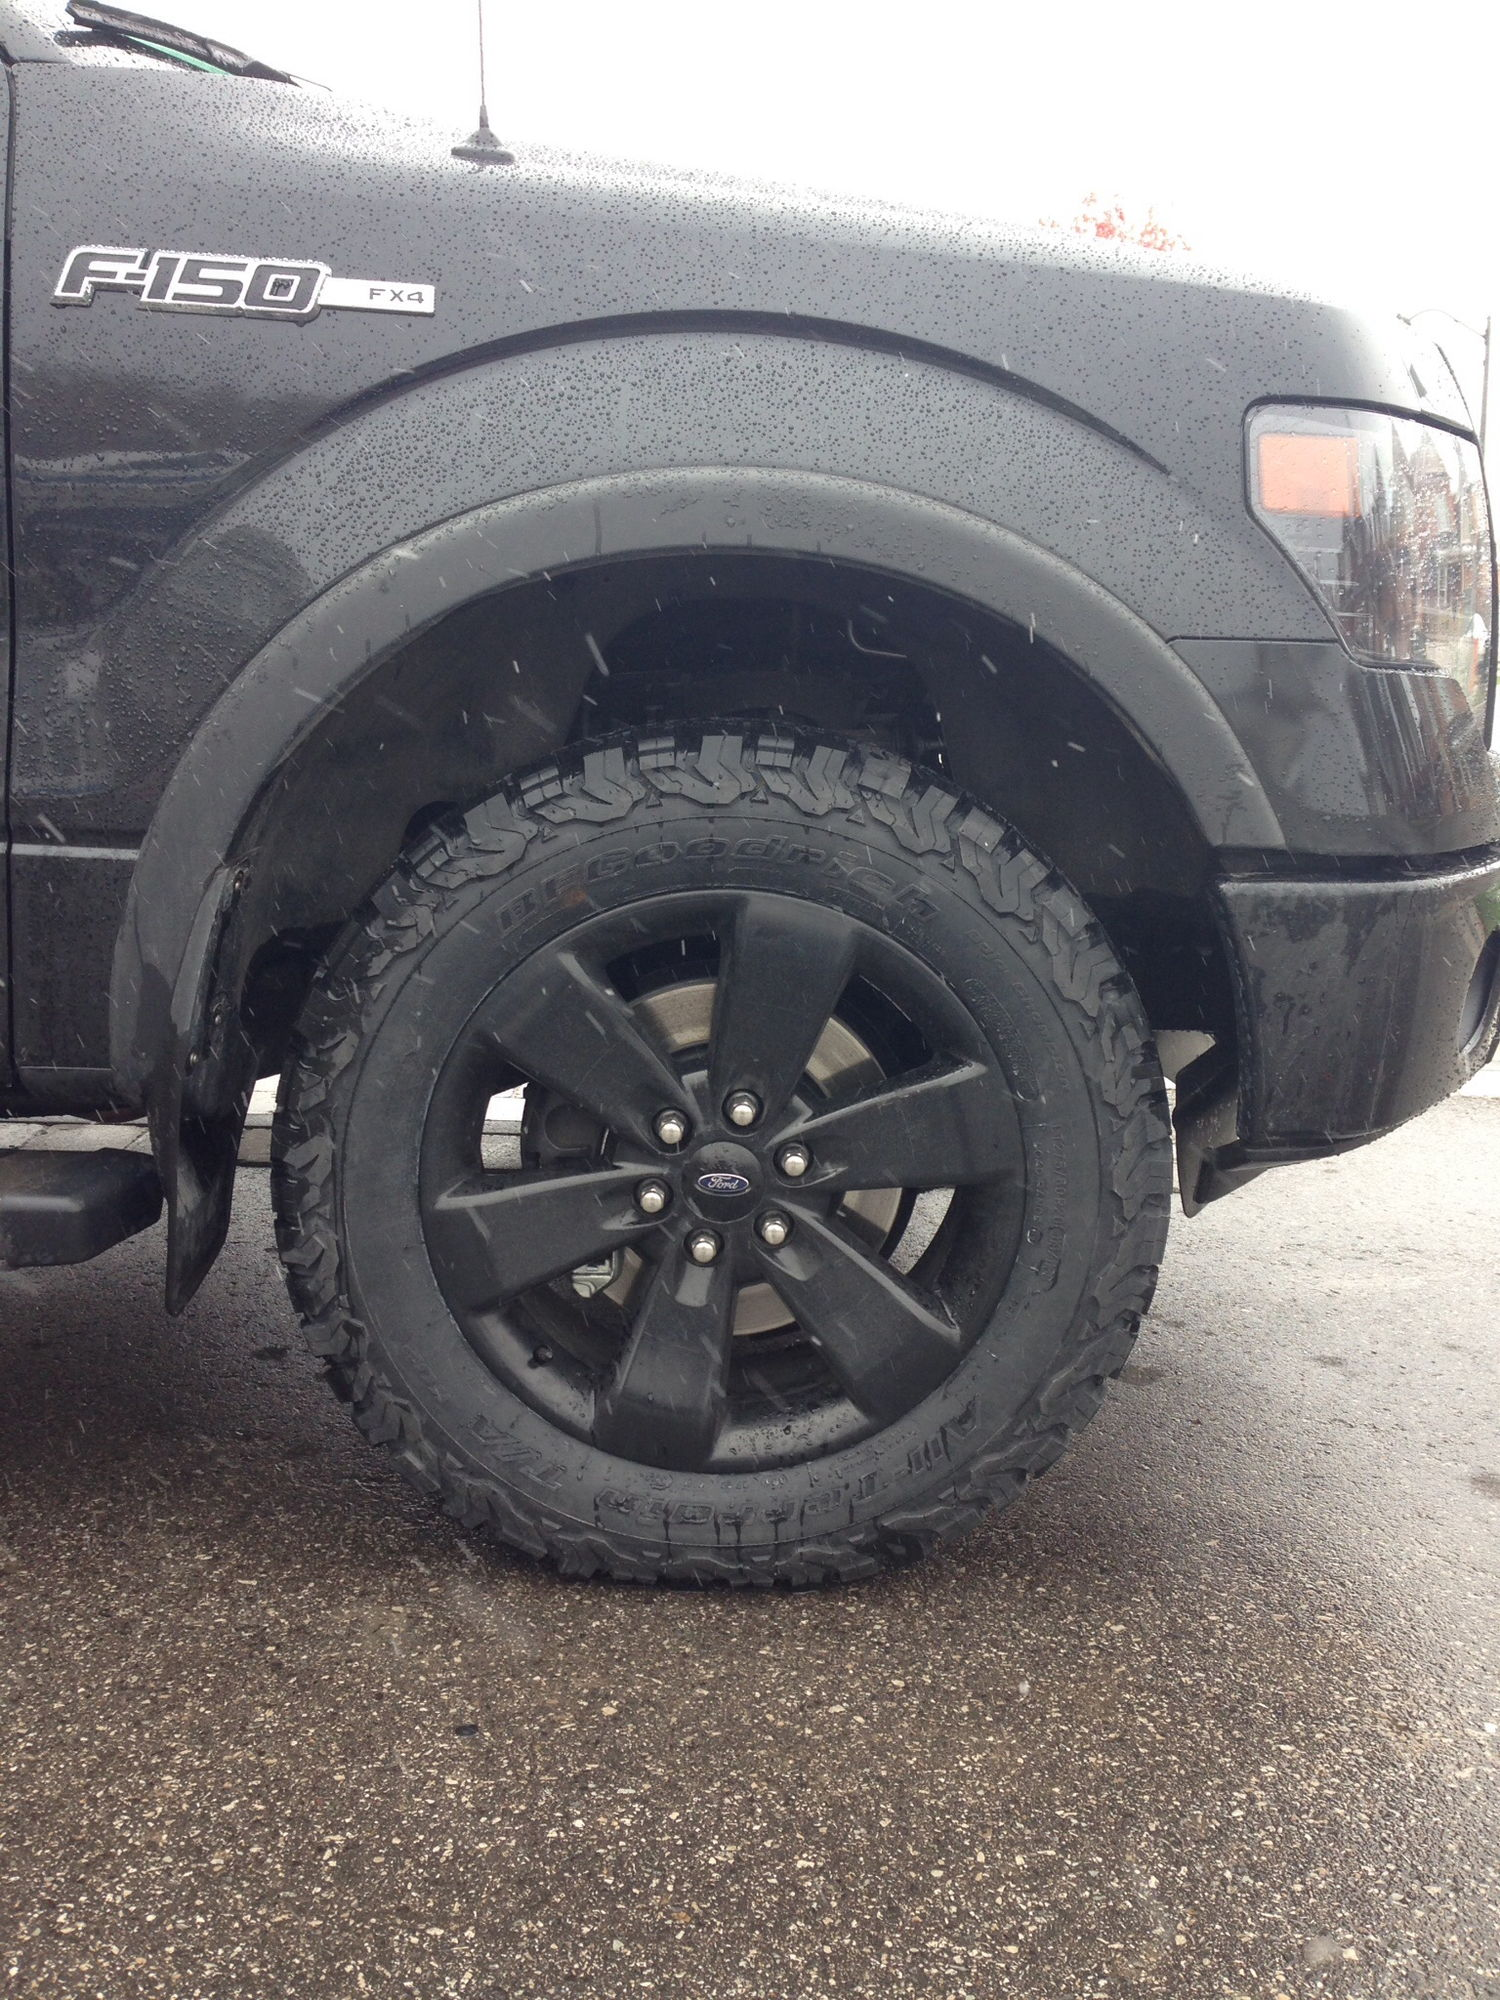 2006 Toyota Tundra Leveling Kit Looking for side view pics of BFG AT KO2 in 275 55 20 Ford F150